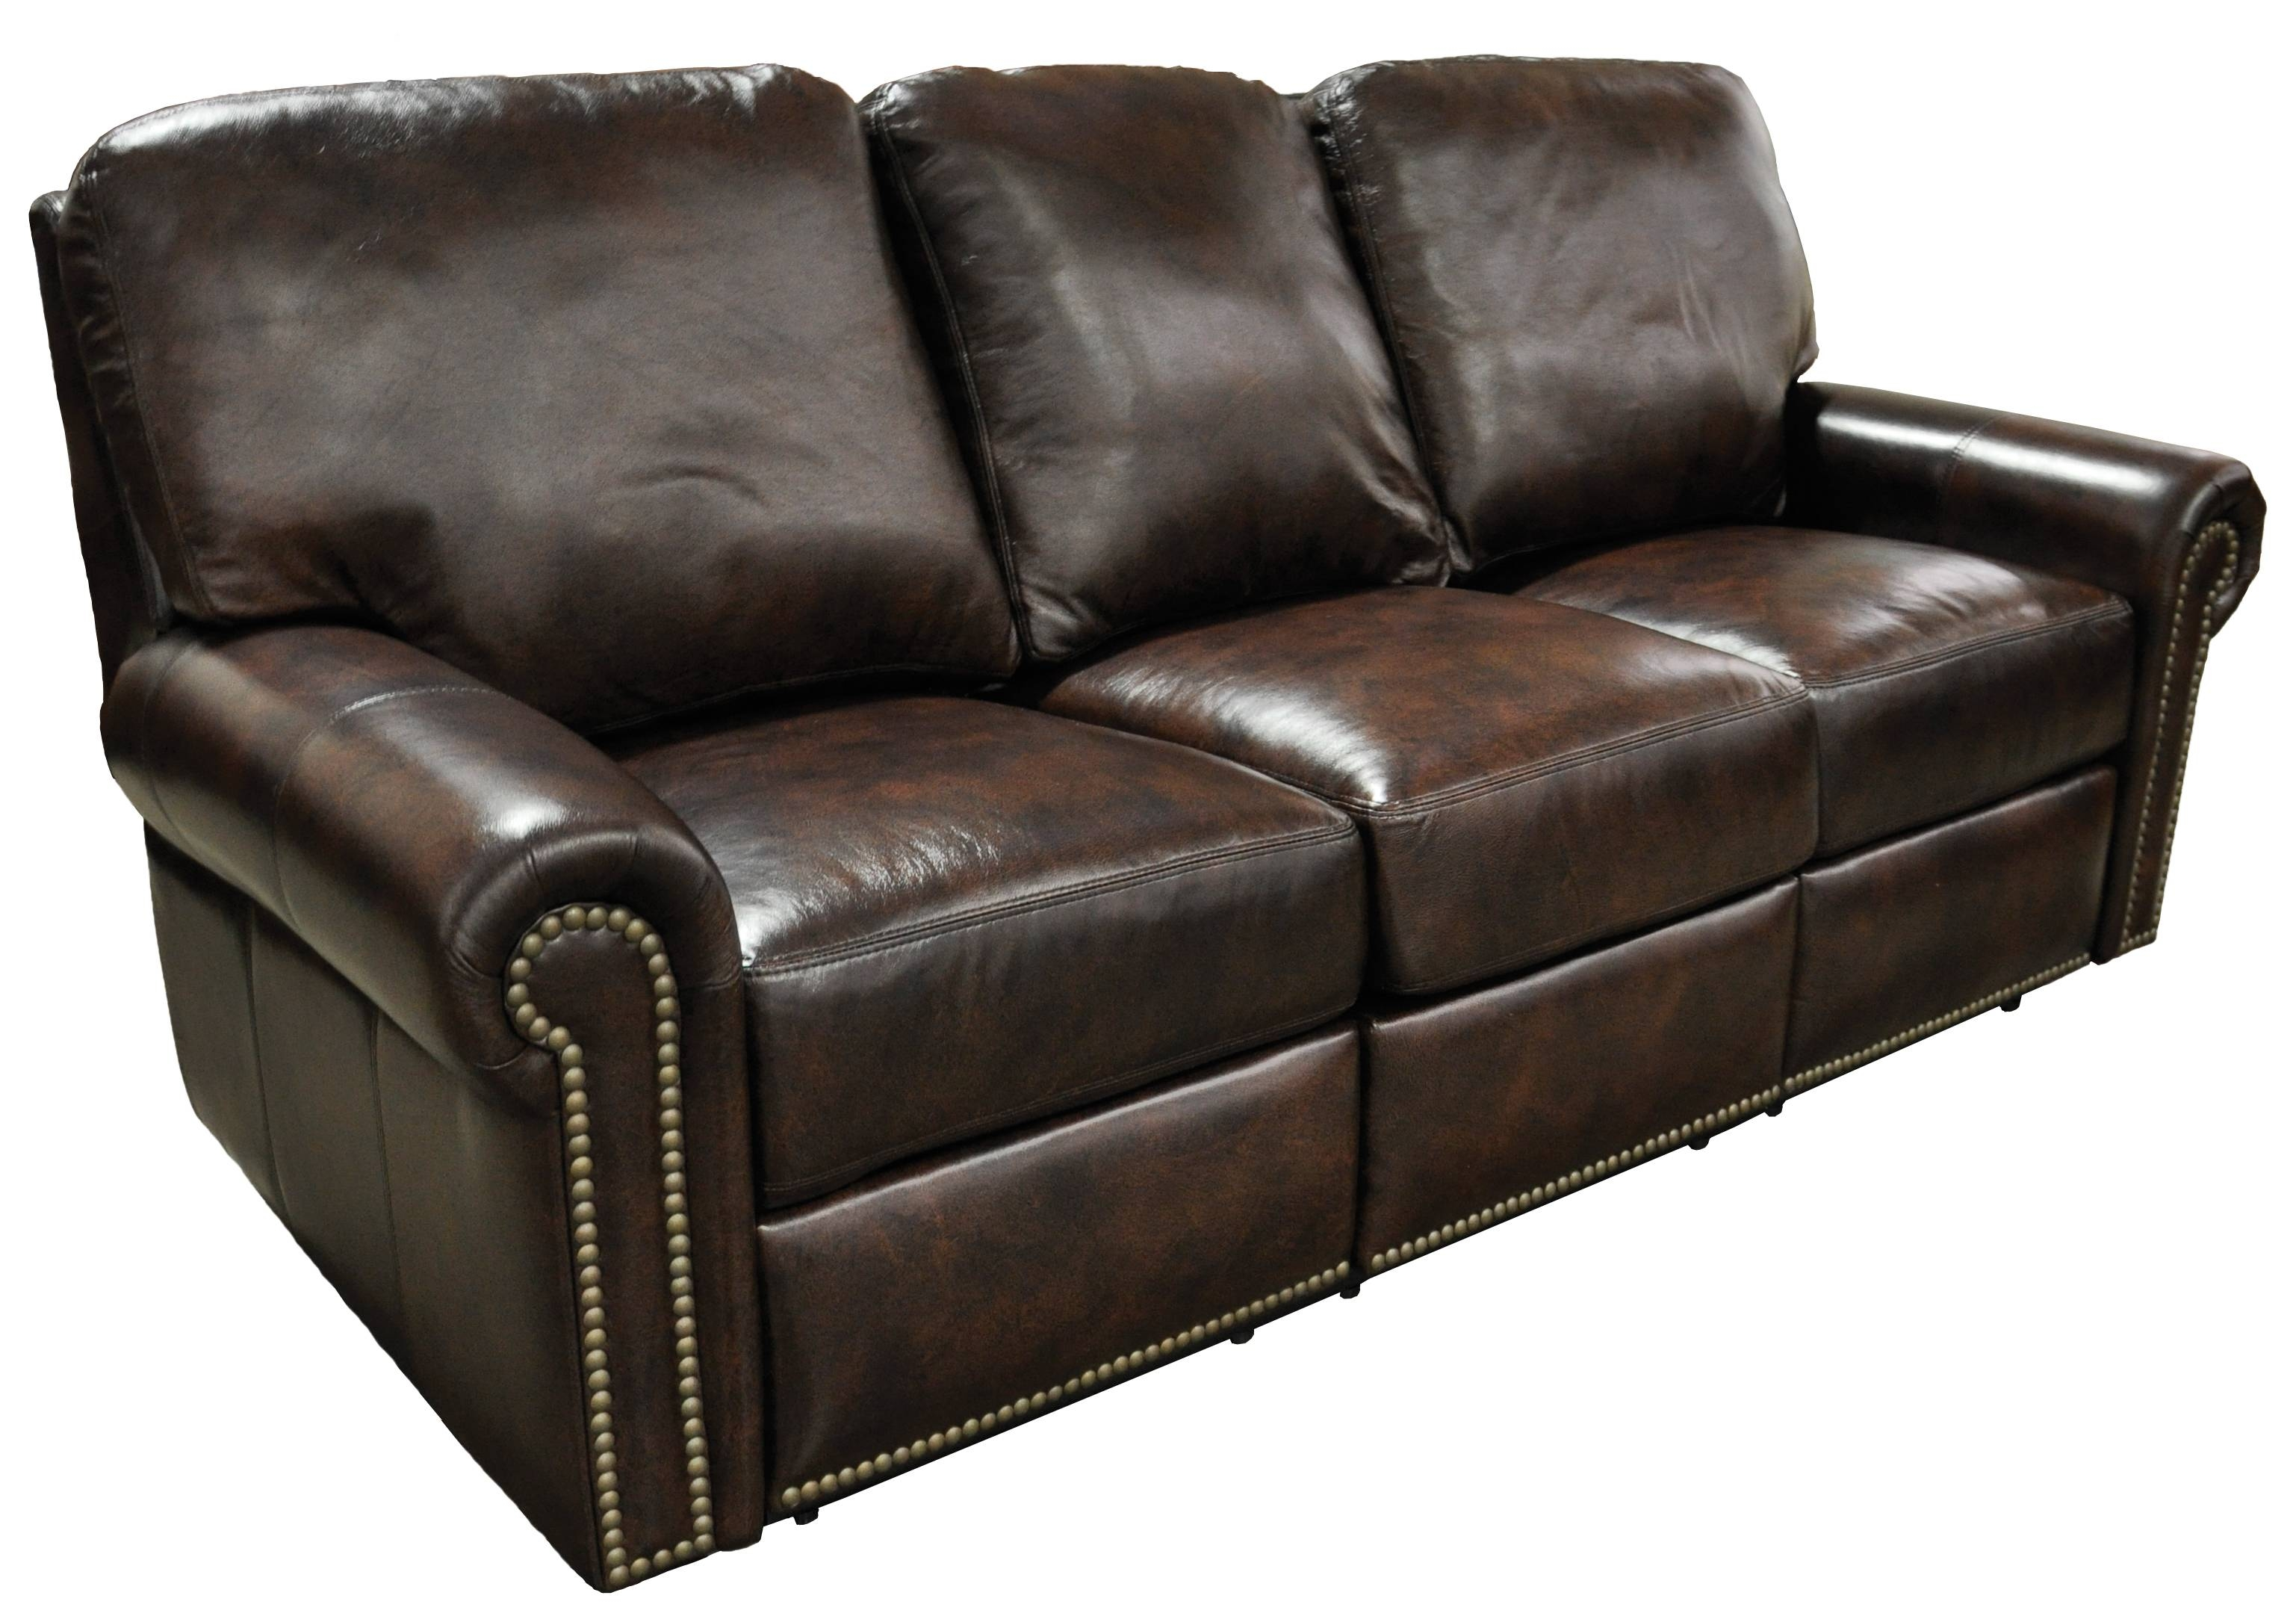 Furniture: Leather Reclining Couch | Flexsteel Sofa | Chesterfield Throughout Chesterfield Recliners (View 13 of 30)